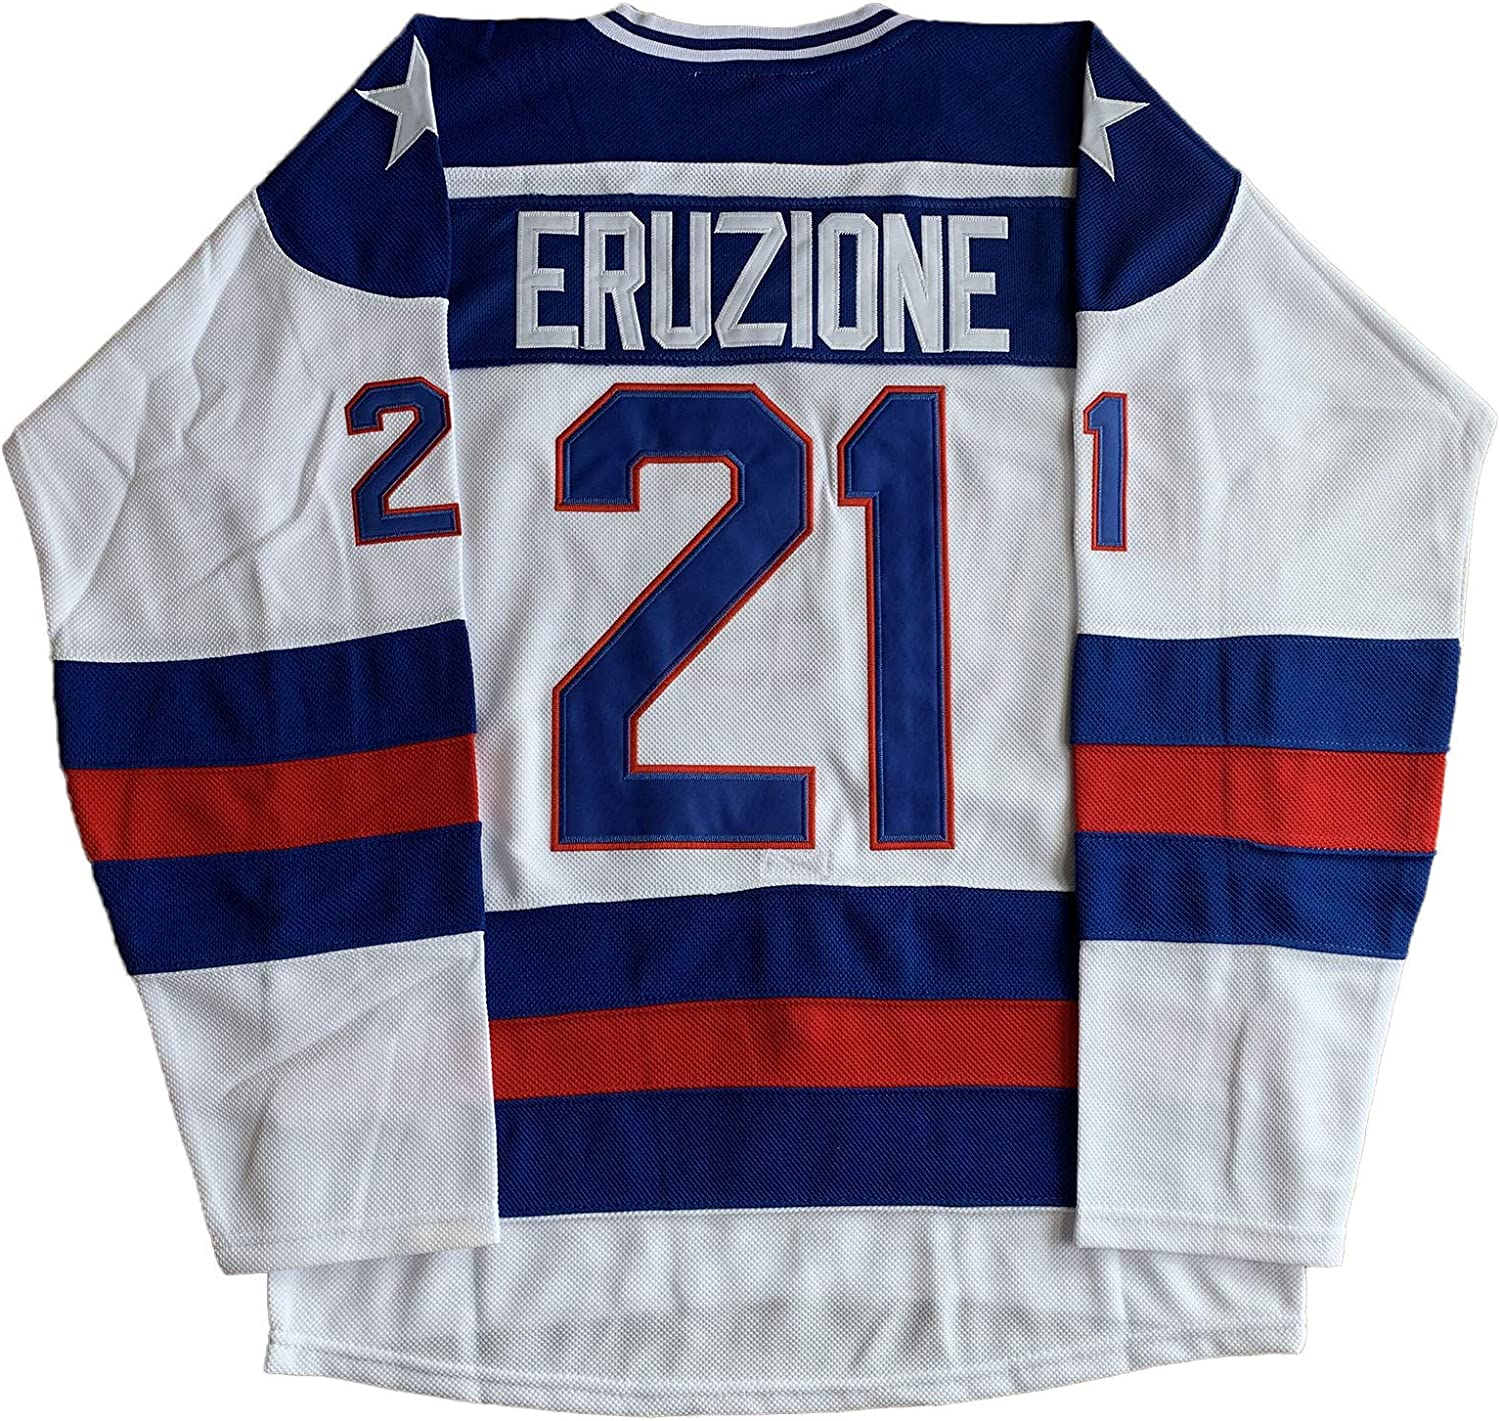 #21 Mike Eruzione 1980 Miracle On Ice USA Hockey 17 Jack O'Callahan 30 Jim Craig Stitched Hockey Jerseys (21 White, X-Large)